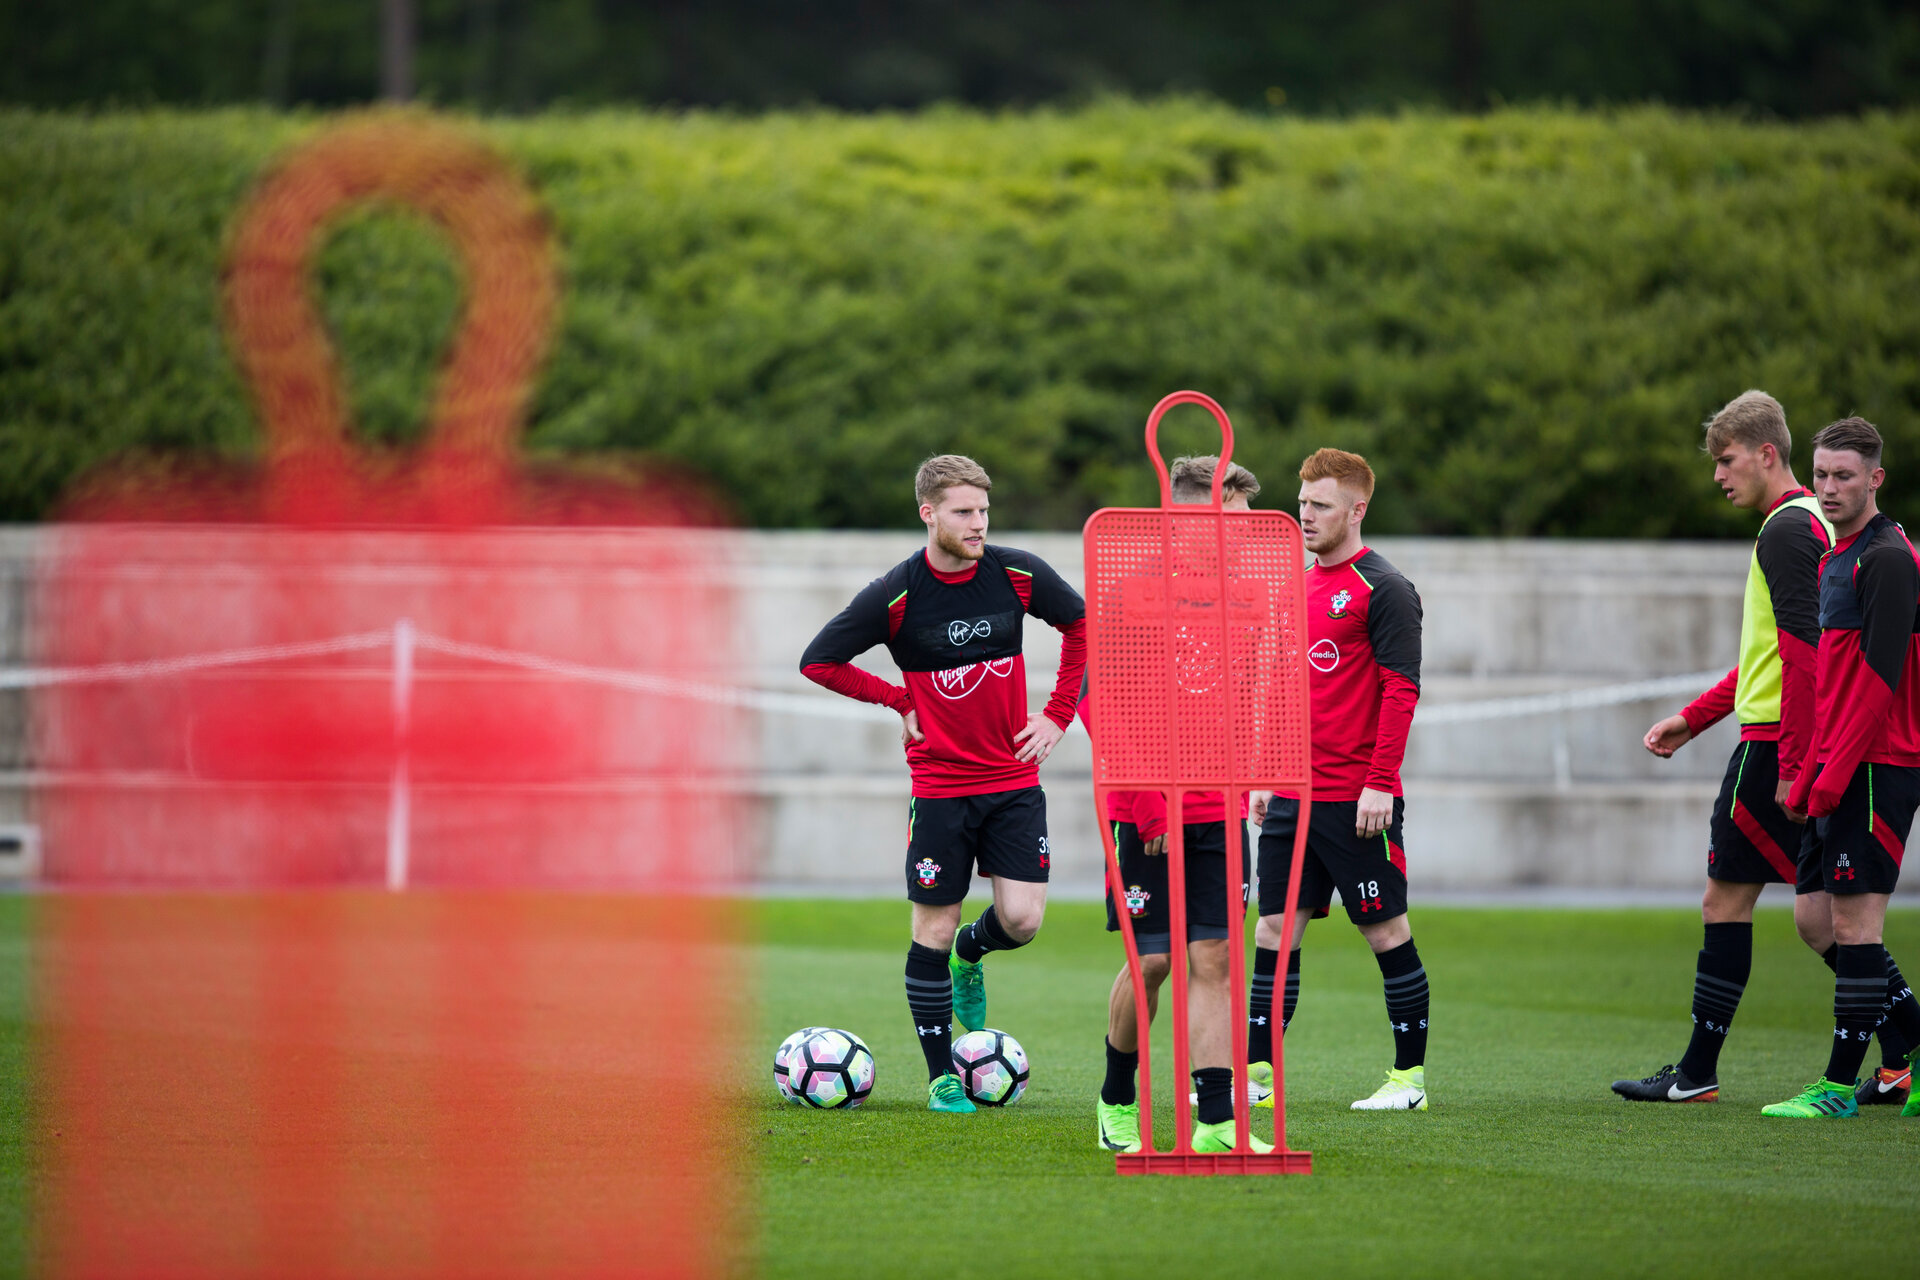 josh sims during an U23 training session at Staplewood, Southampton, England on 3rd May 2017. Photo by Naomi Baker/SFC/Digital South.